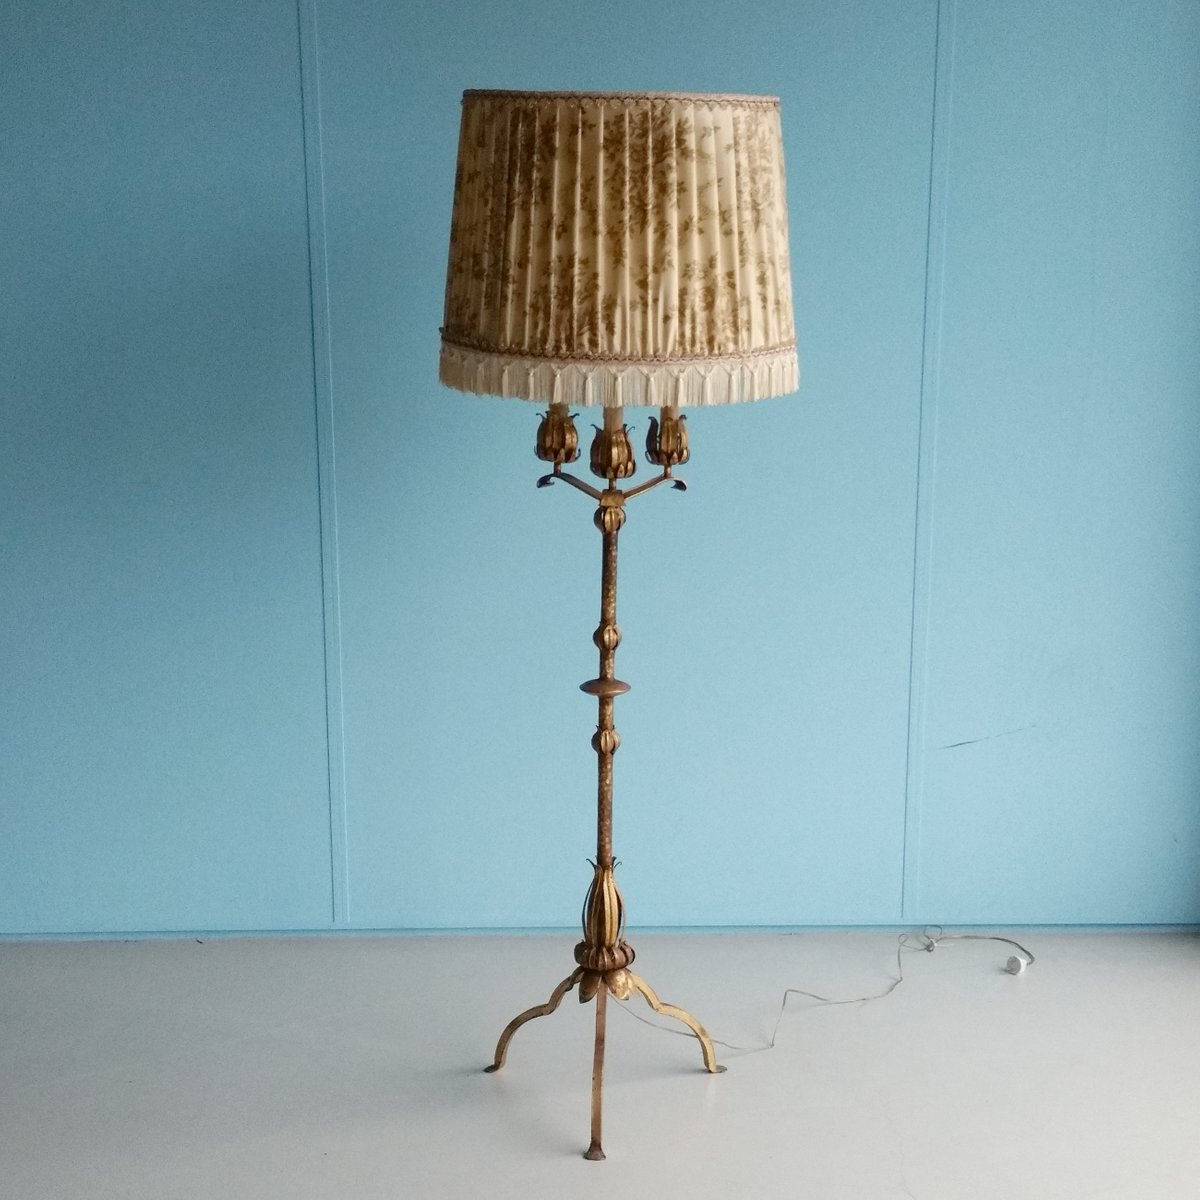 Gilt Metal Floor Lamp with Faux Candles, 1960s for sale at Pamono